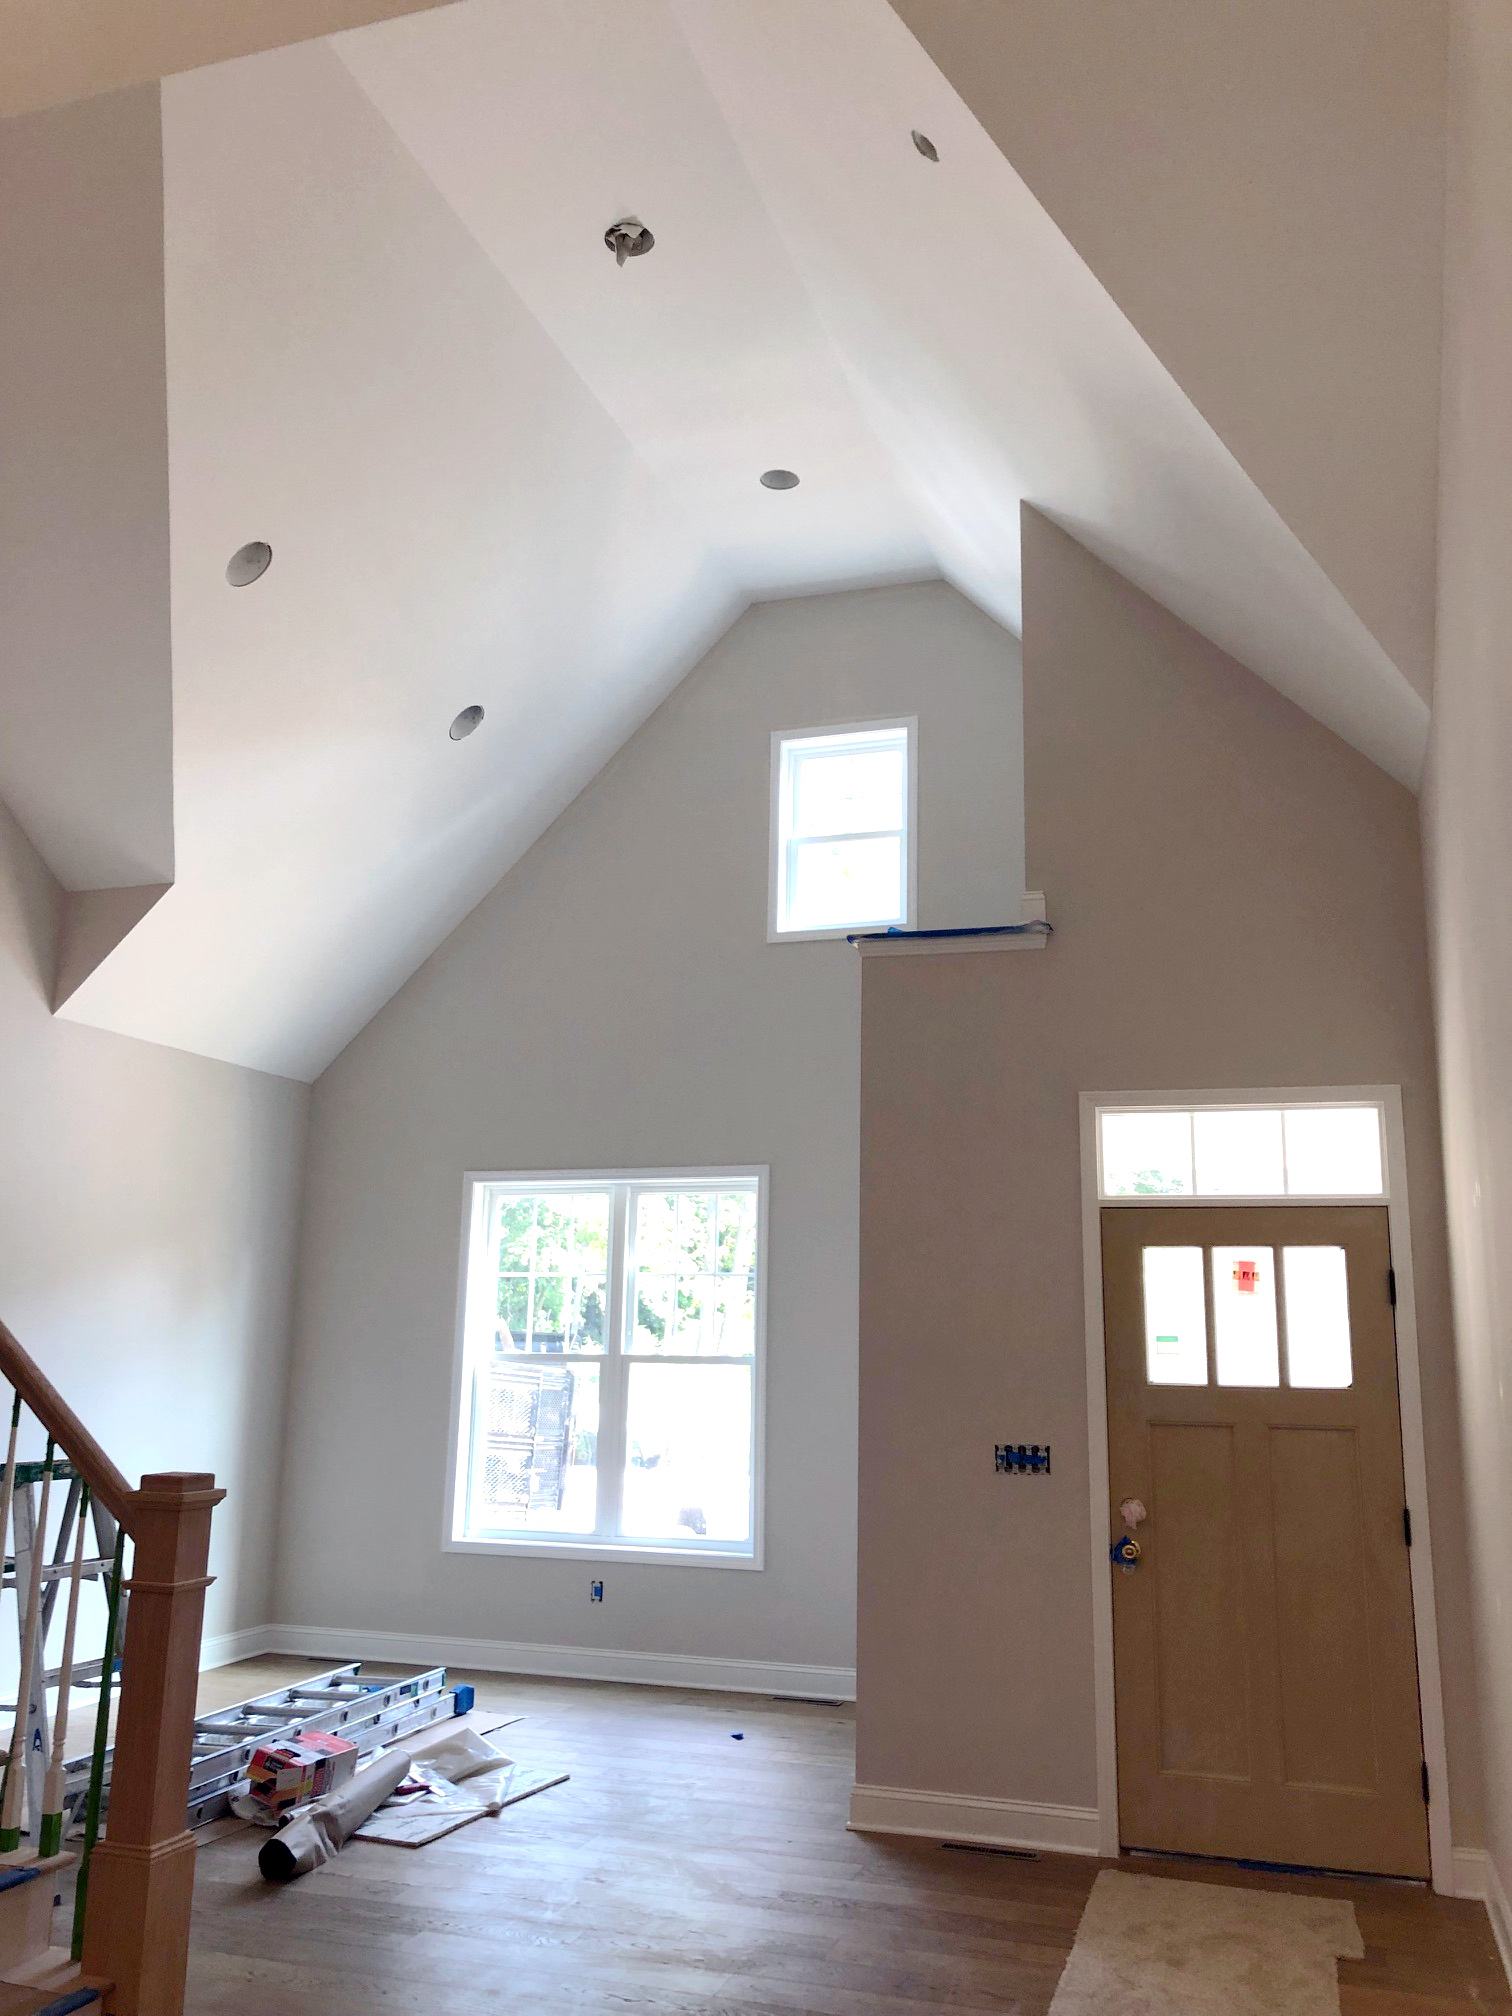 belmonte home builders 2019 saratoga showcase of homes 43 julian's way saratoga springs ny 12866 grand foyer